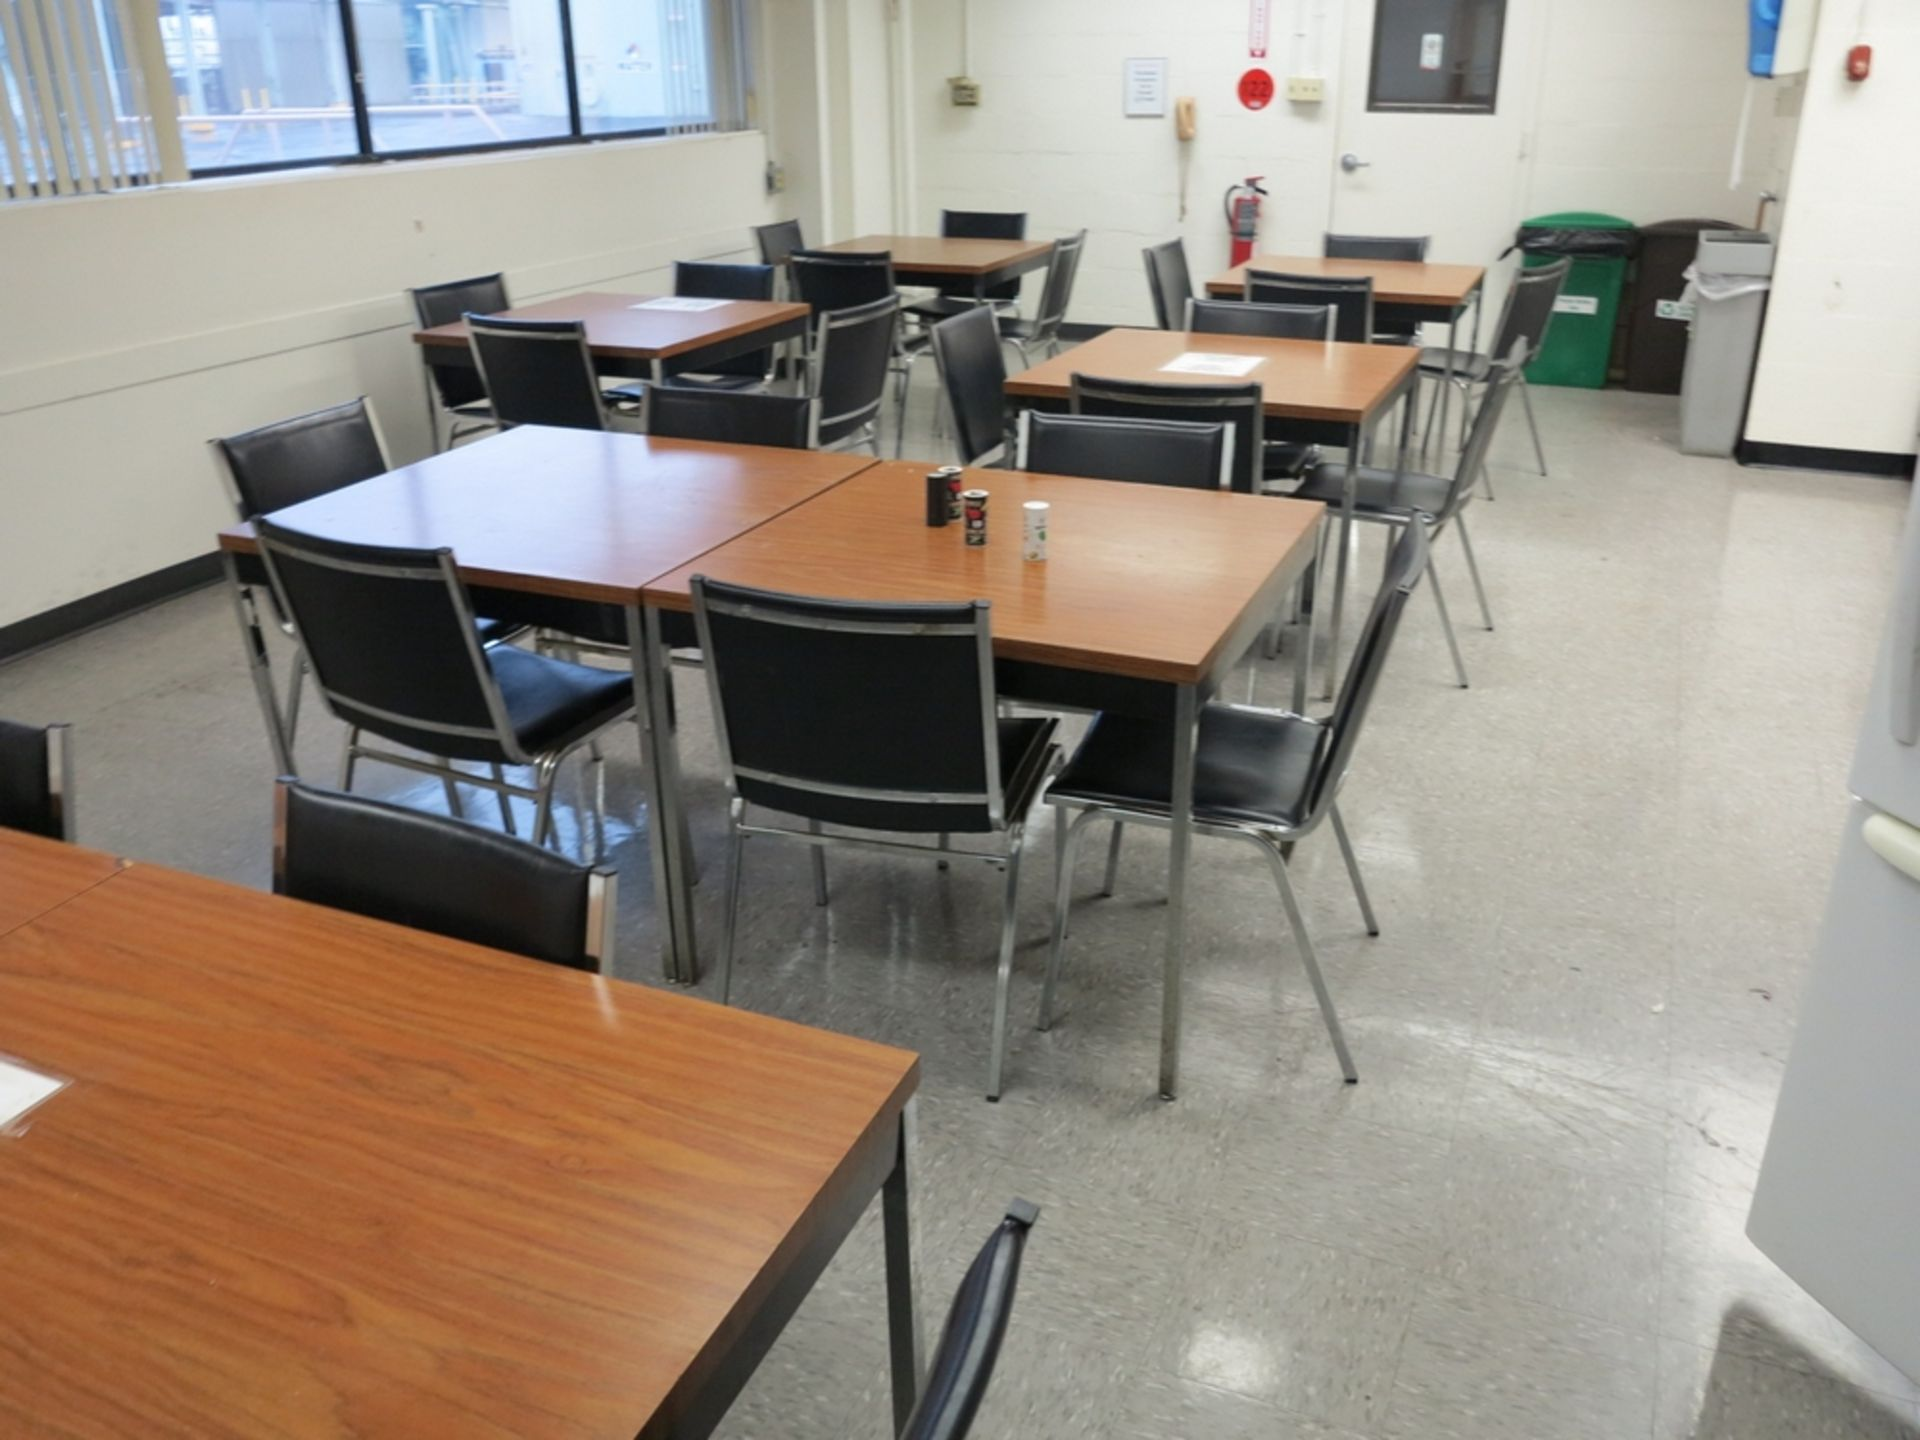 Lot 1 - LOT - CONTENTS OF LUNCHROOM TO INCLUDE: (9) 3' X 3' TABLES, (28) CHAIRS, GE CAROUSEL MICROWAVE, LG